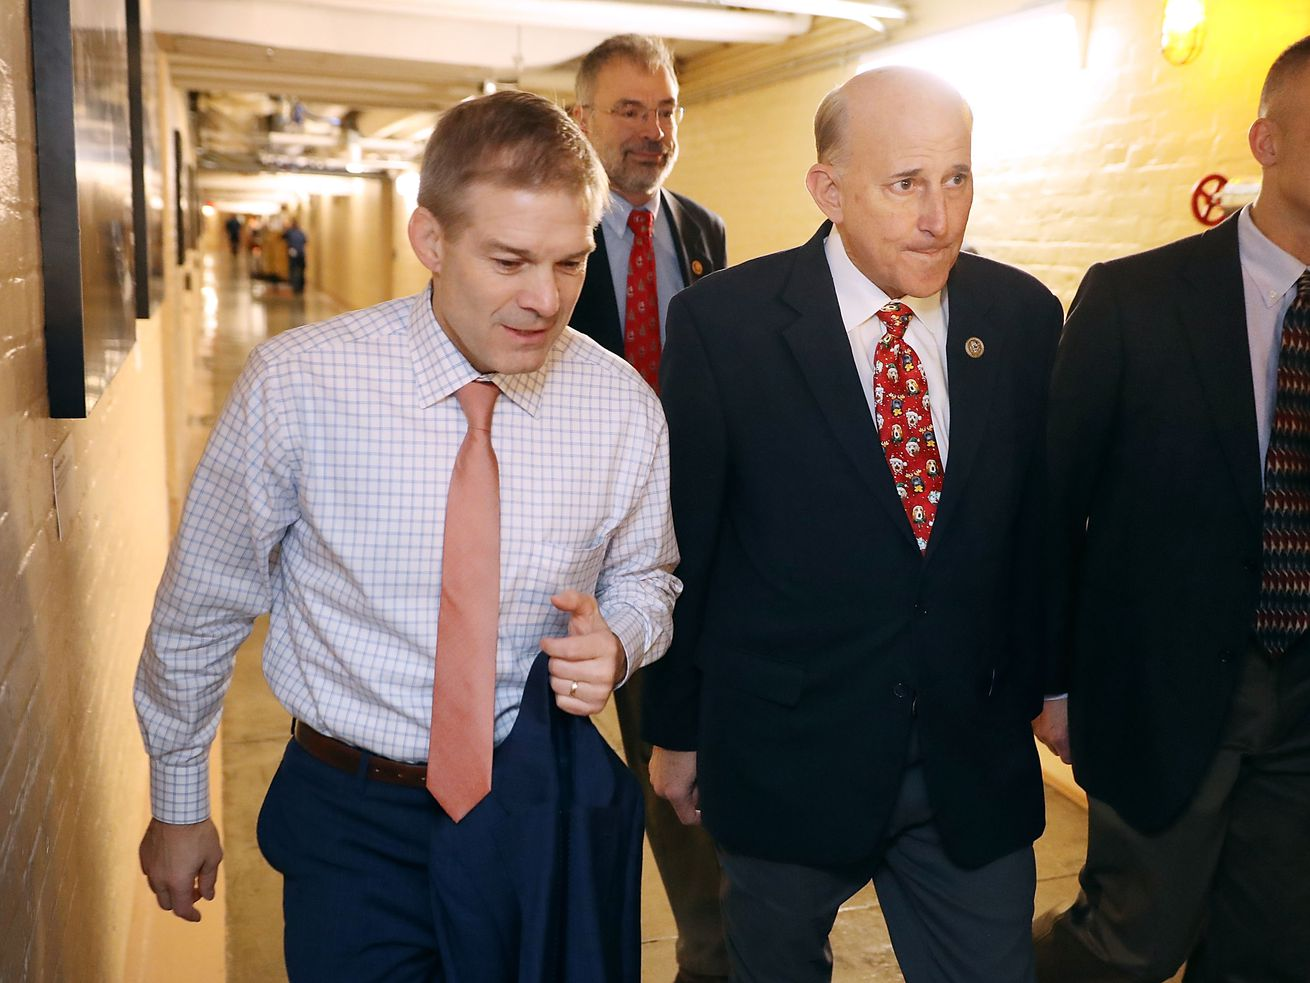 Rep. Jim Jordan is being supported by his fellow members in the House Freedom Caucus.